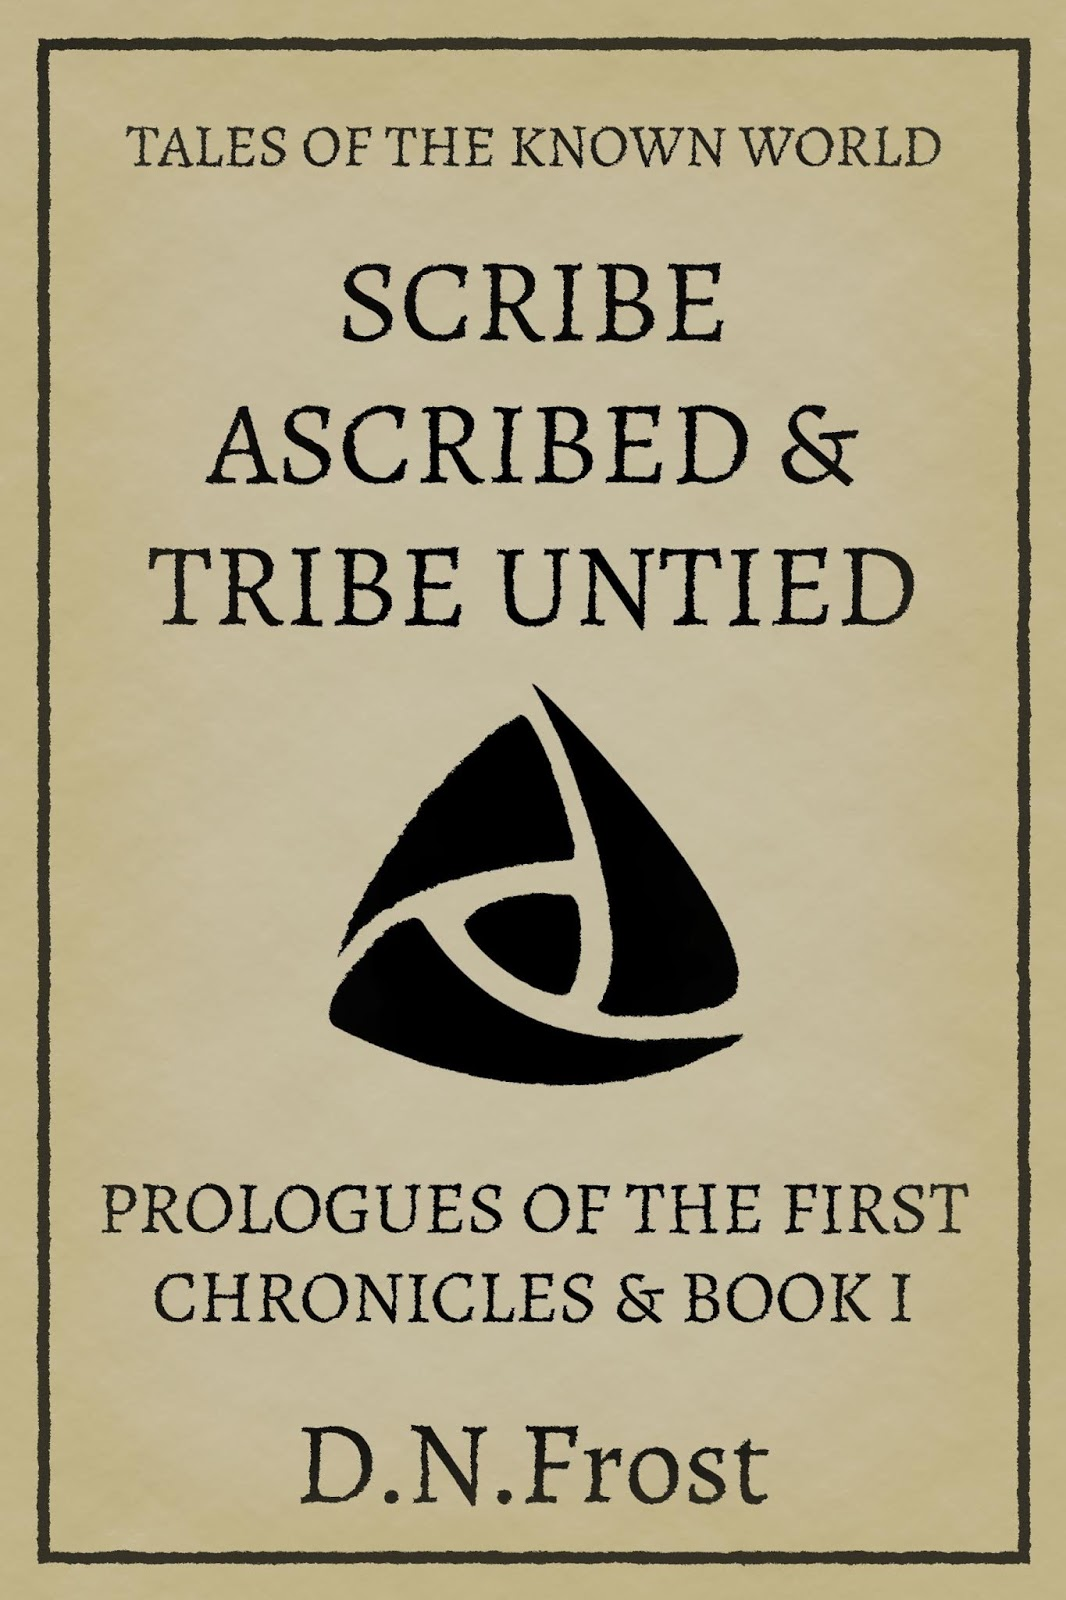 Scribe Ascribed & Tribe Untied is a two-part novella, prologues to the Chronicles of Mother's Gate and the first book of the series, Awakening. http://www.DNFrost.com/Bookend1 #TotKW